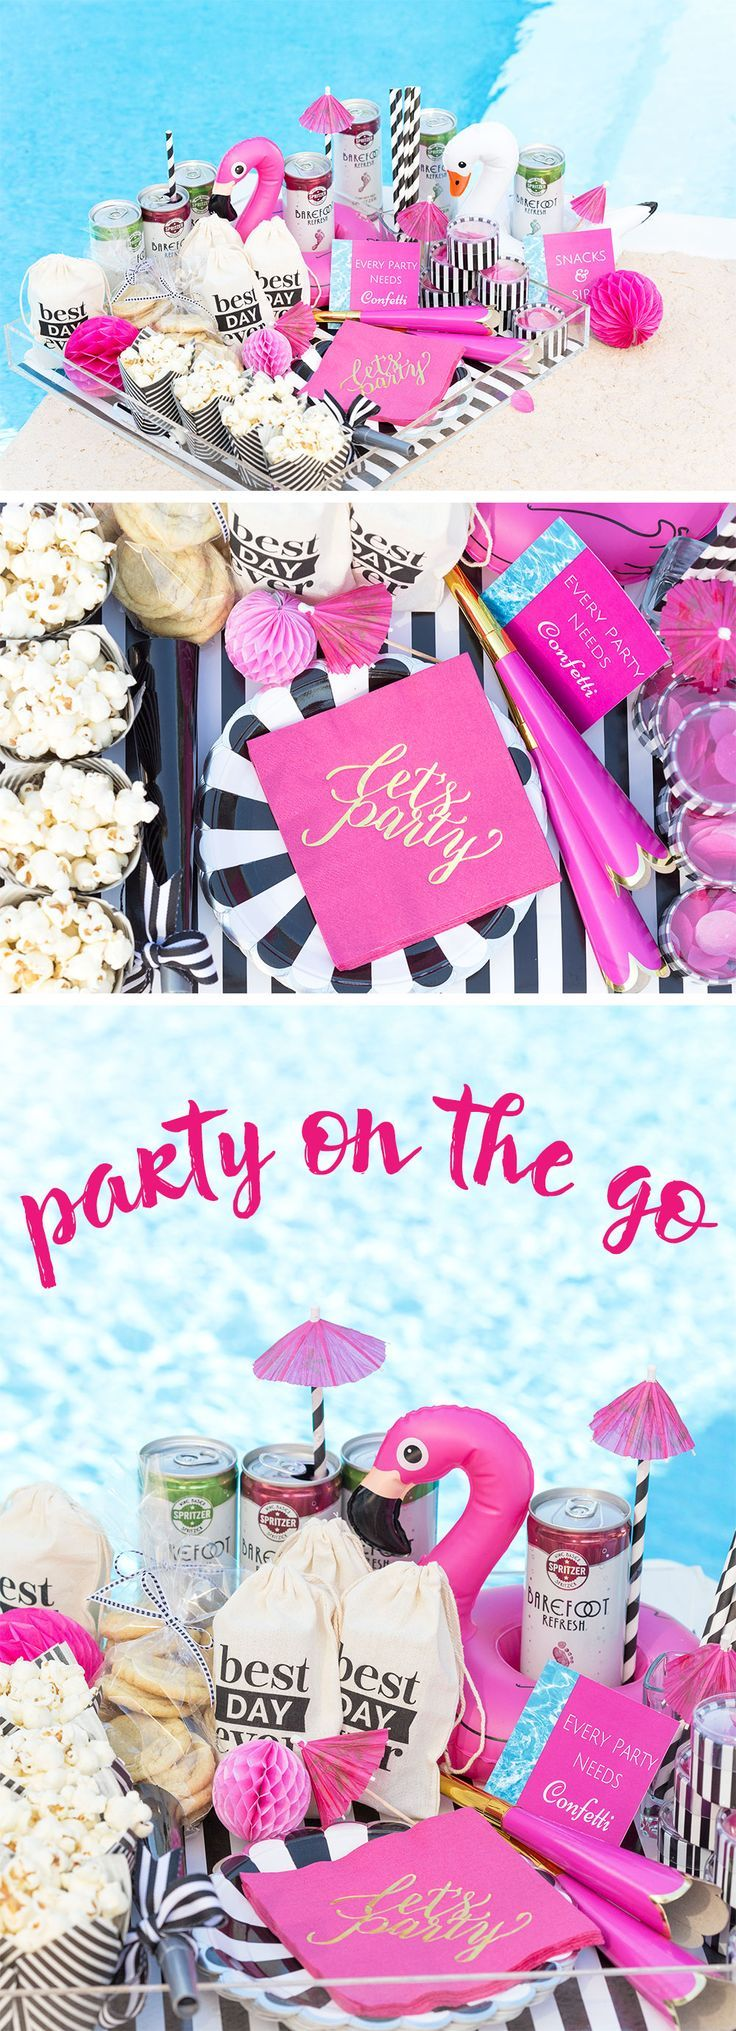 Get tips for creating the ultimate poolside party to go with everything from party decorations, drinks and food, and creative ideas too!